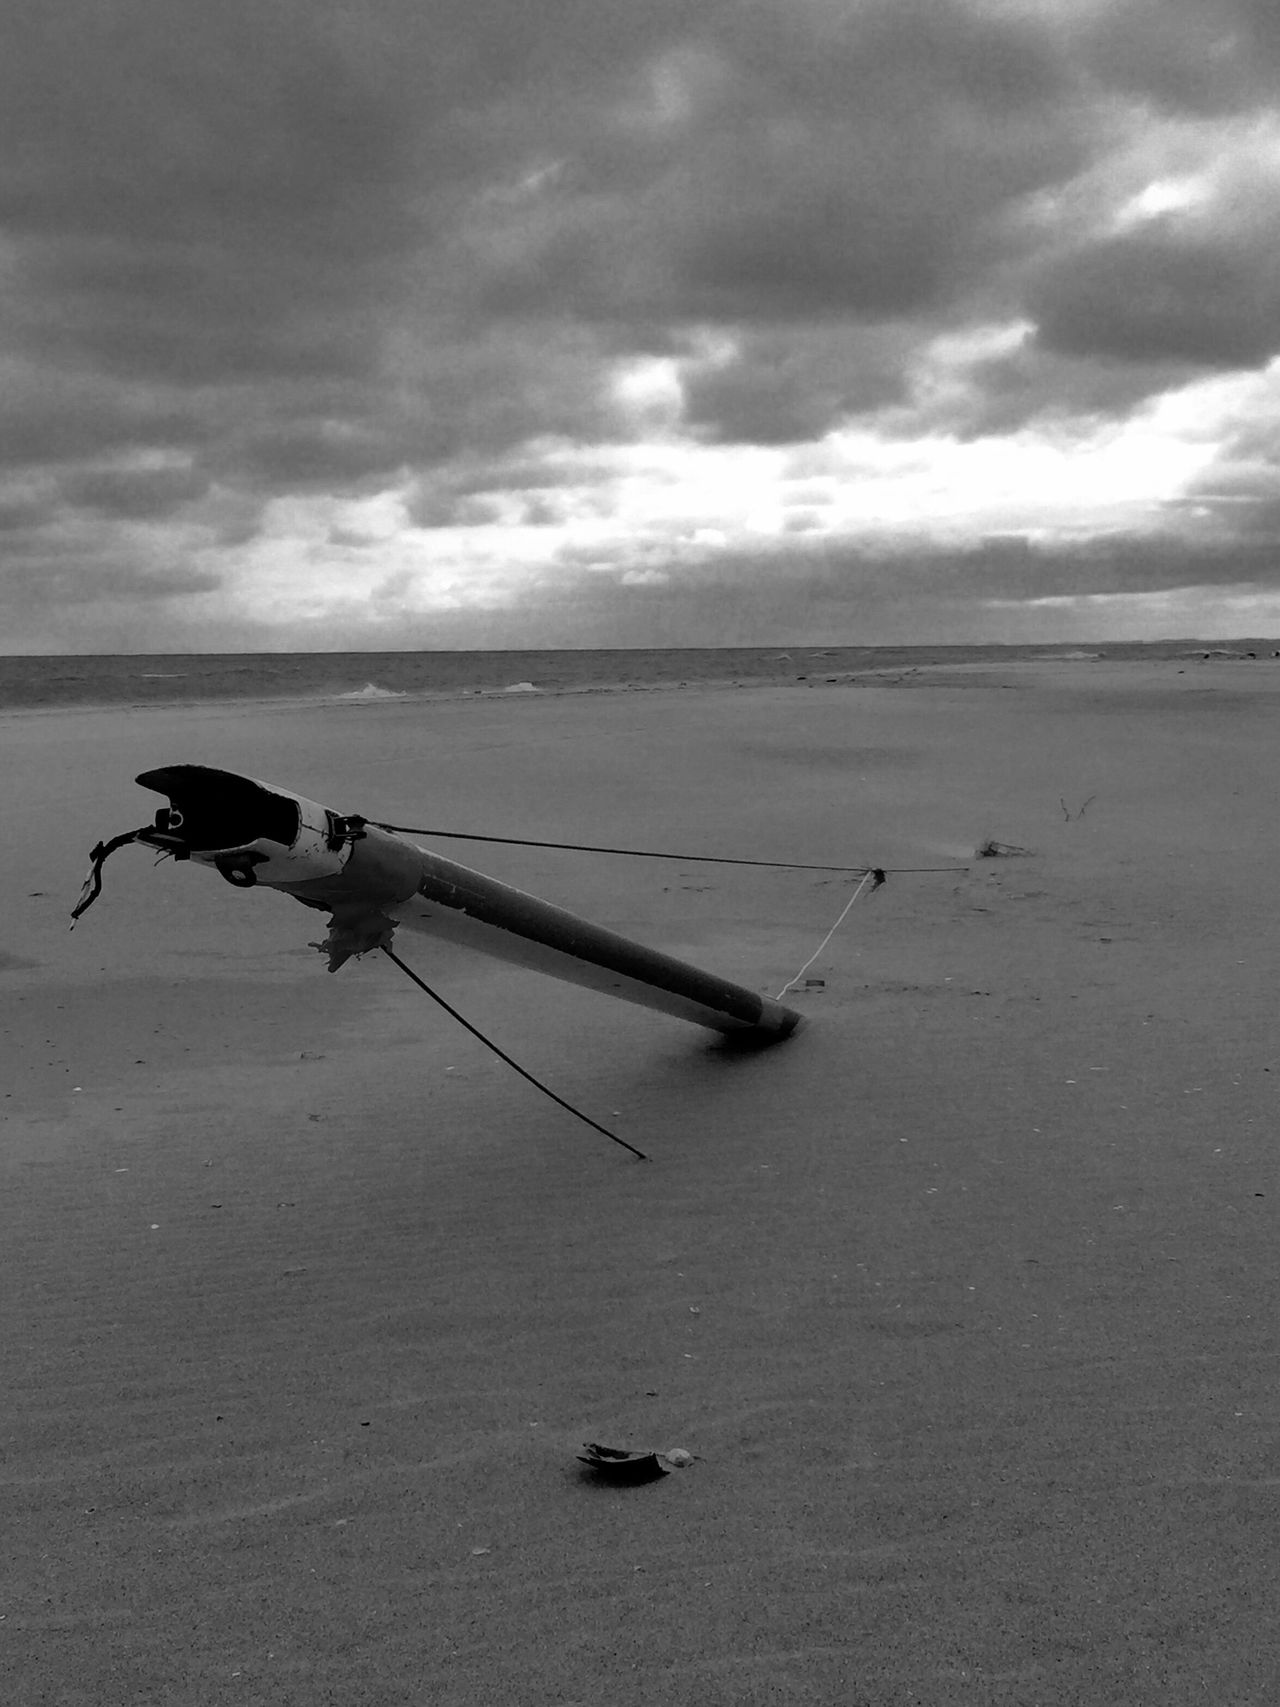 Buried Ship (Assateague) Mast Shipwrecked Sea Horizon Over Water Sky Cloud - Sky Water Tranquil Scene Tranquility Scenics Cloud Beauty In Nature Nature Shore Flying Non-urban Scene No People Cloudy Vacations Remote Autumn Beach Marooned Eastern Shore Of Virginia Monochrome Photography Live For The Story